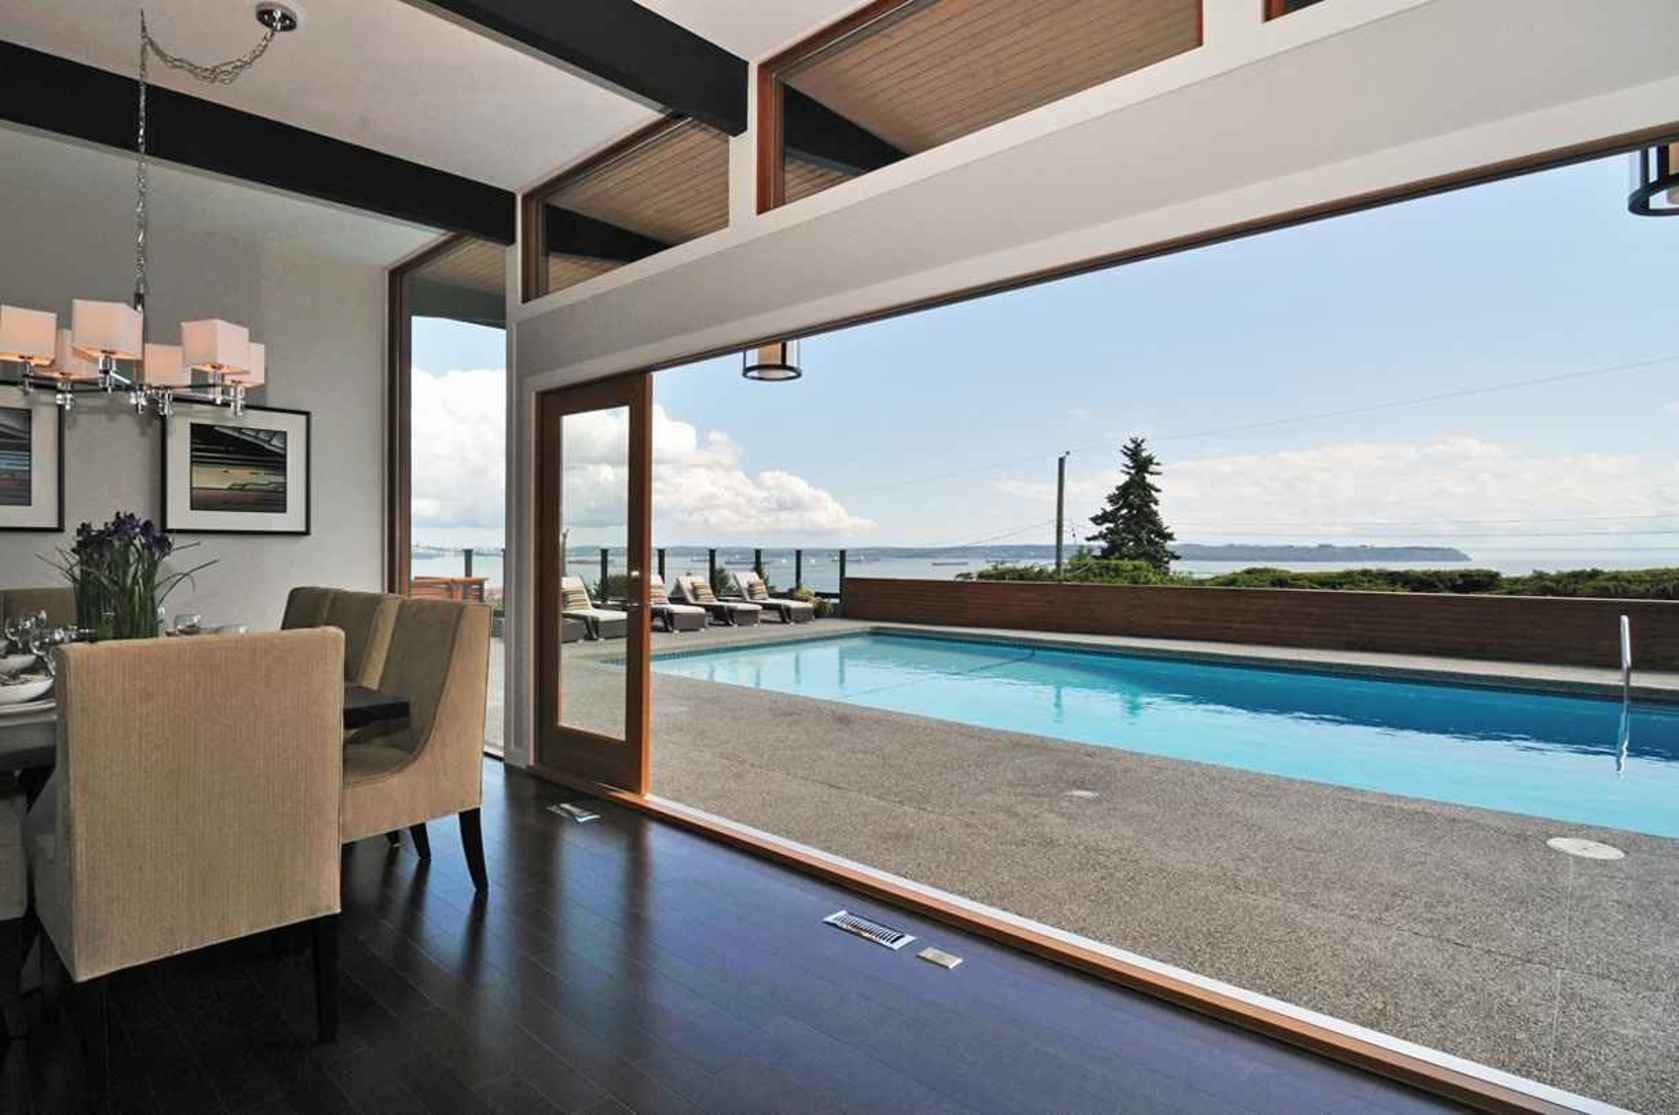 4125BurkehillViewofPoolfromInteriorbest at 4125 Burkehill Place, Bayridge, West Vancouver